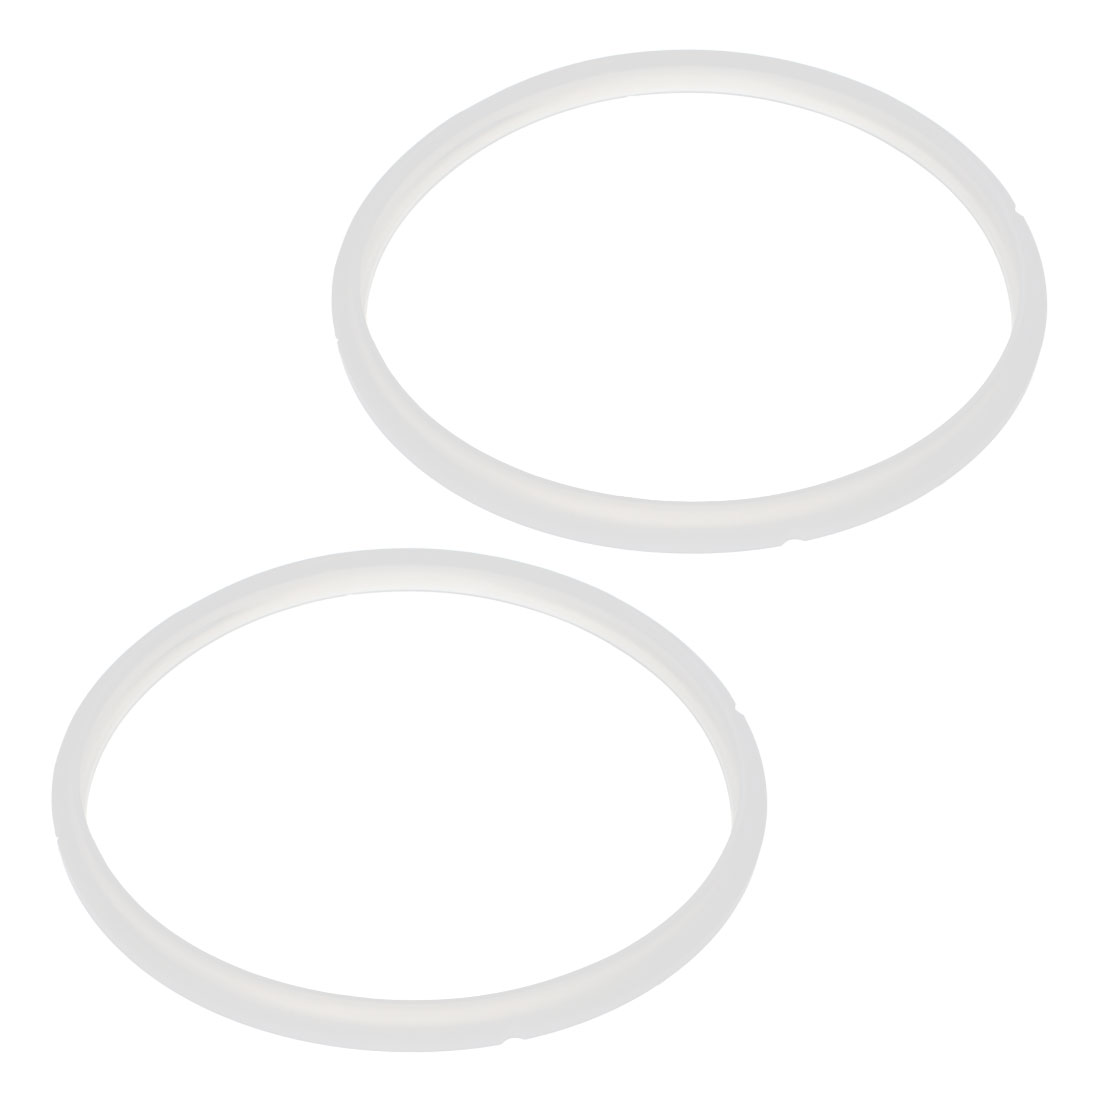 2PCS 24cm Internal Dia Gasket Sealing Ring for 7-8L Pressure Cookers